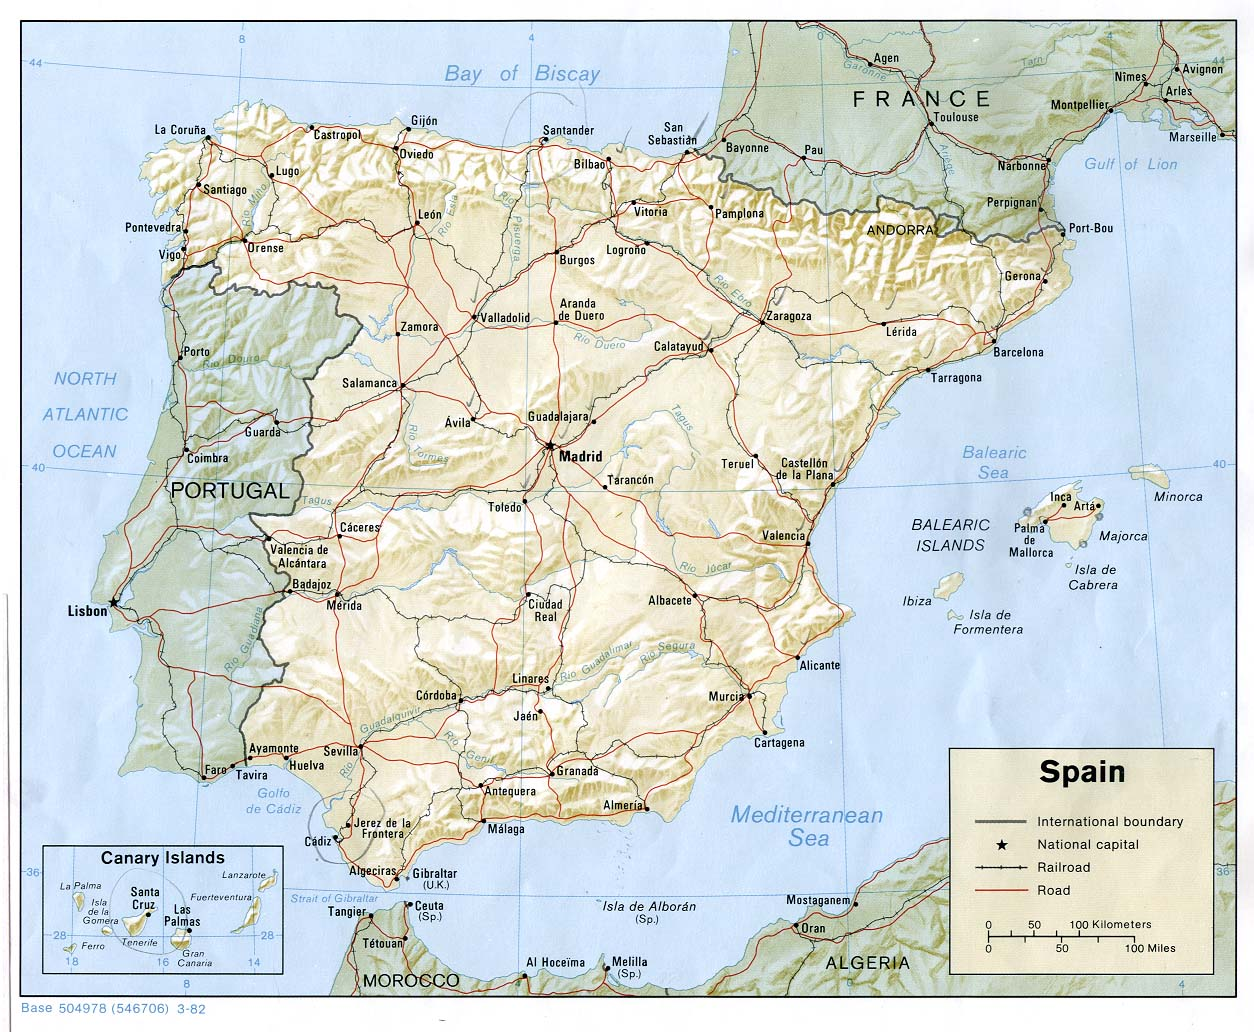 InterOpporg Shaded Relief Map of Spain large 1982